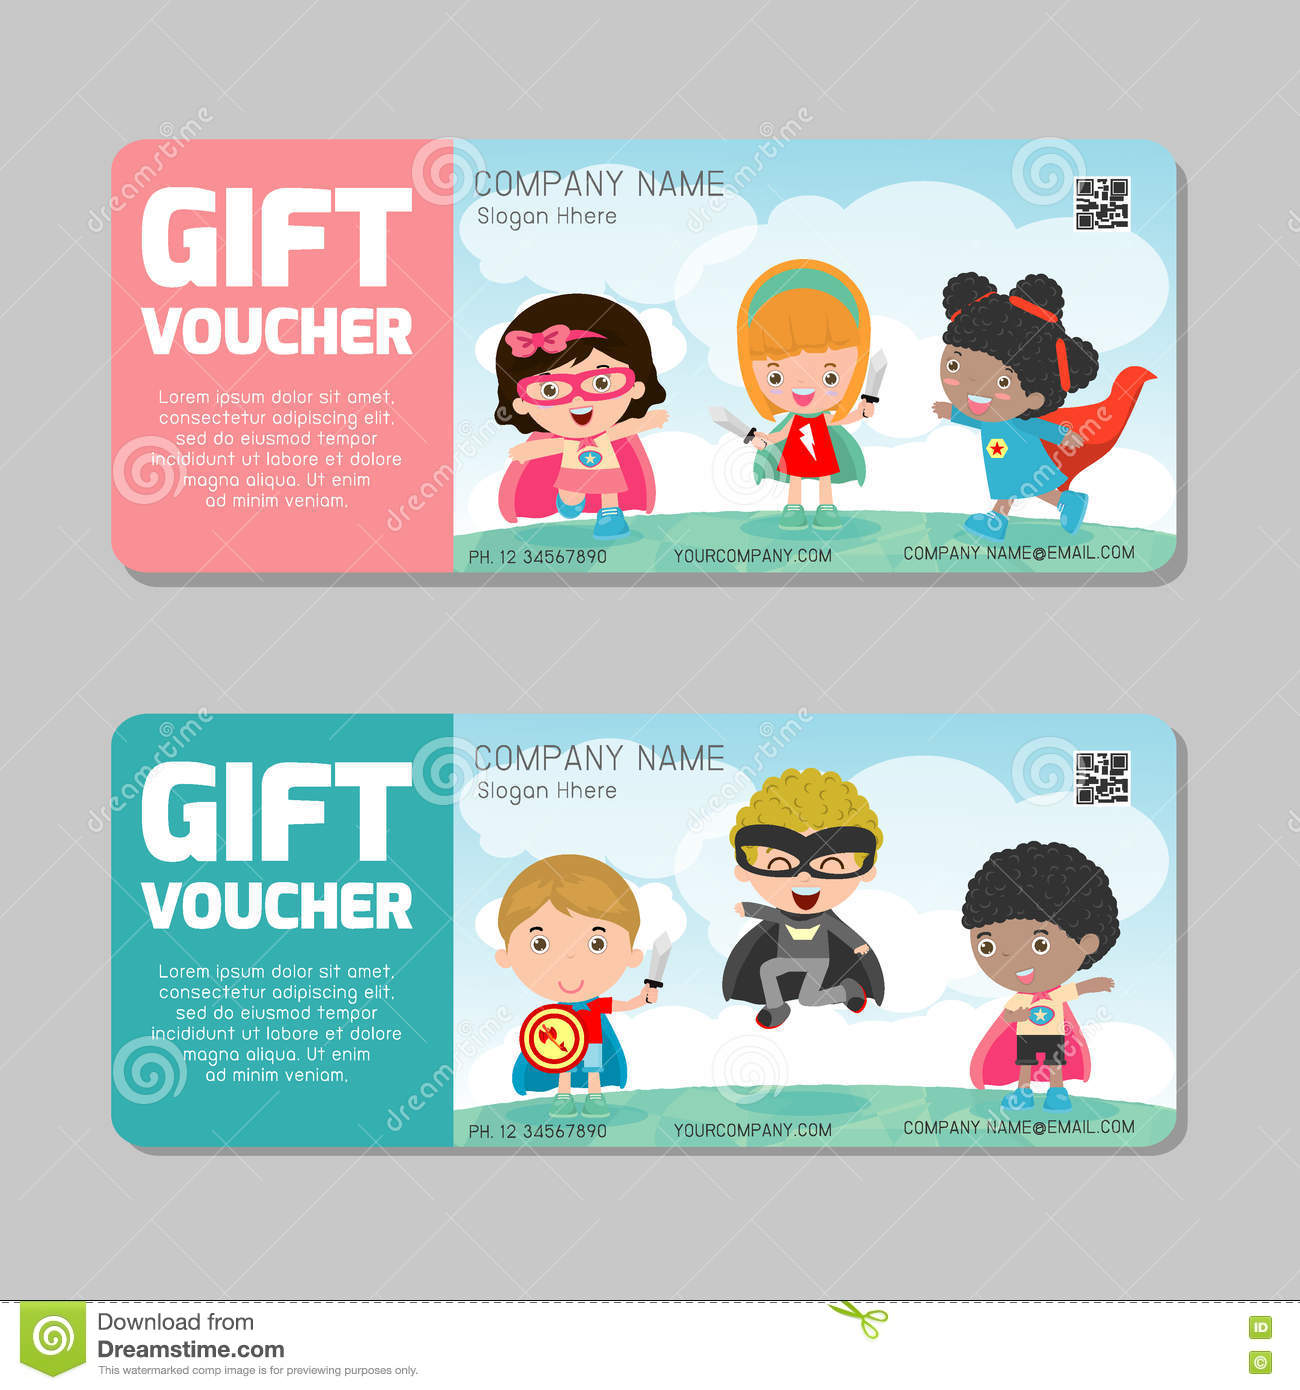 Gift voucher template and modern patternild concept voucher gift voucher template and modern patternild concept voucher template with premium pattern voucher superhero kids yelopaper Image collections